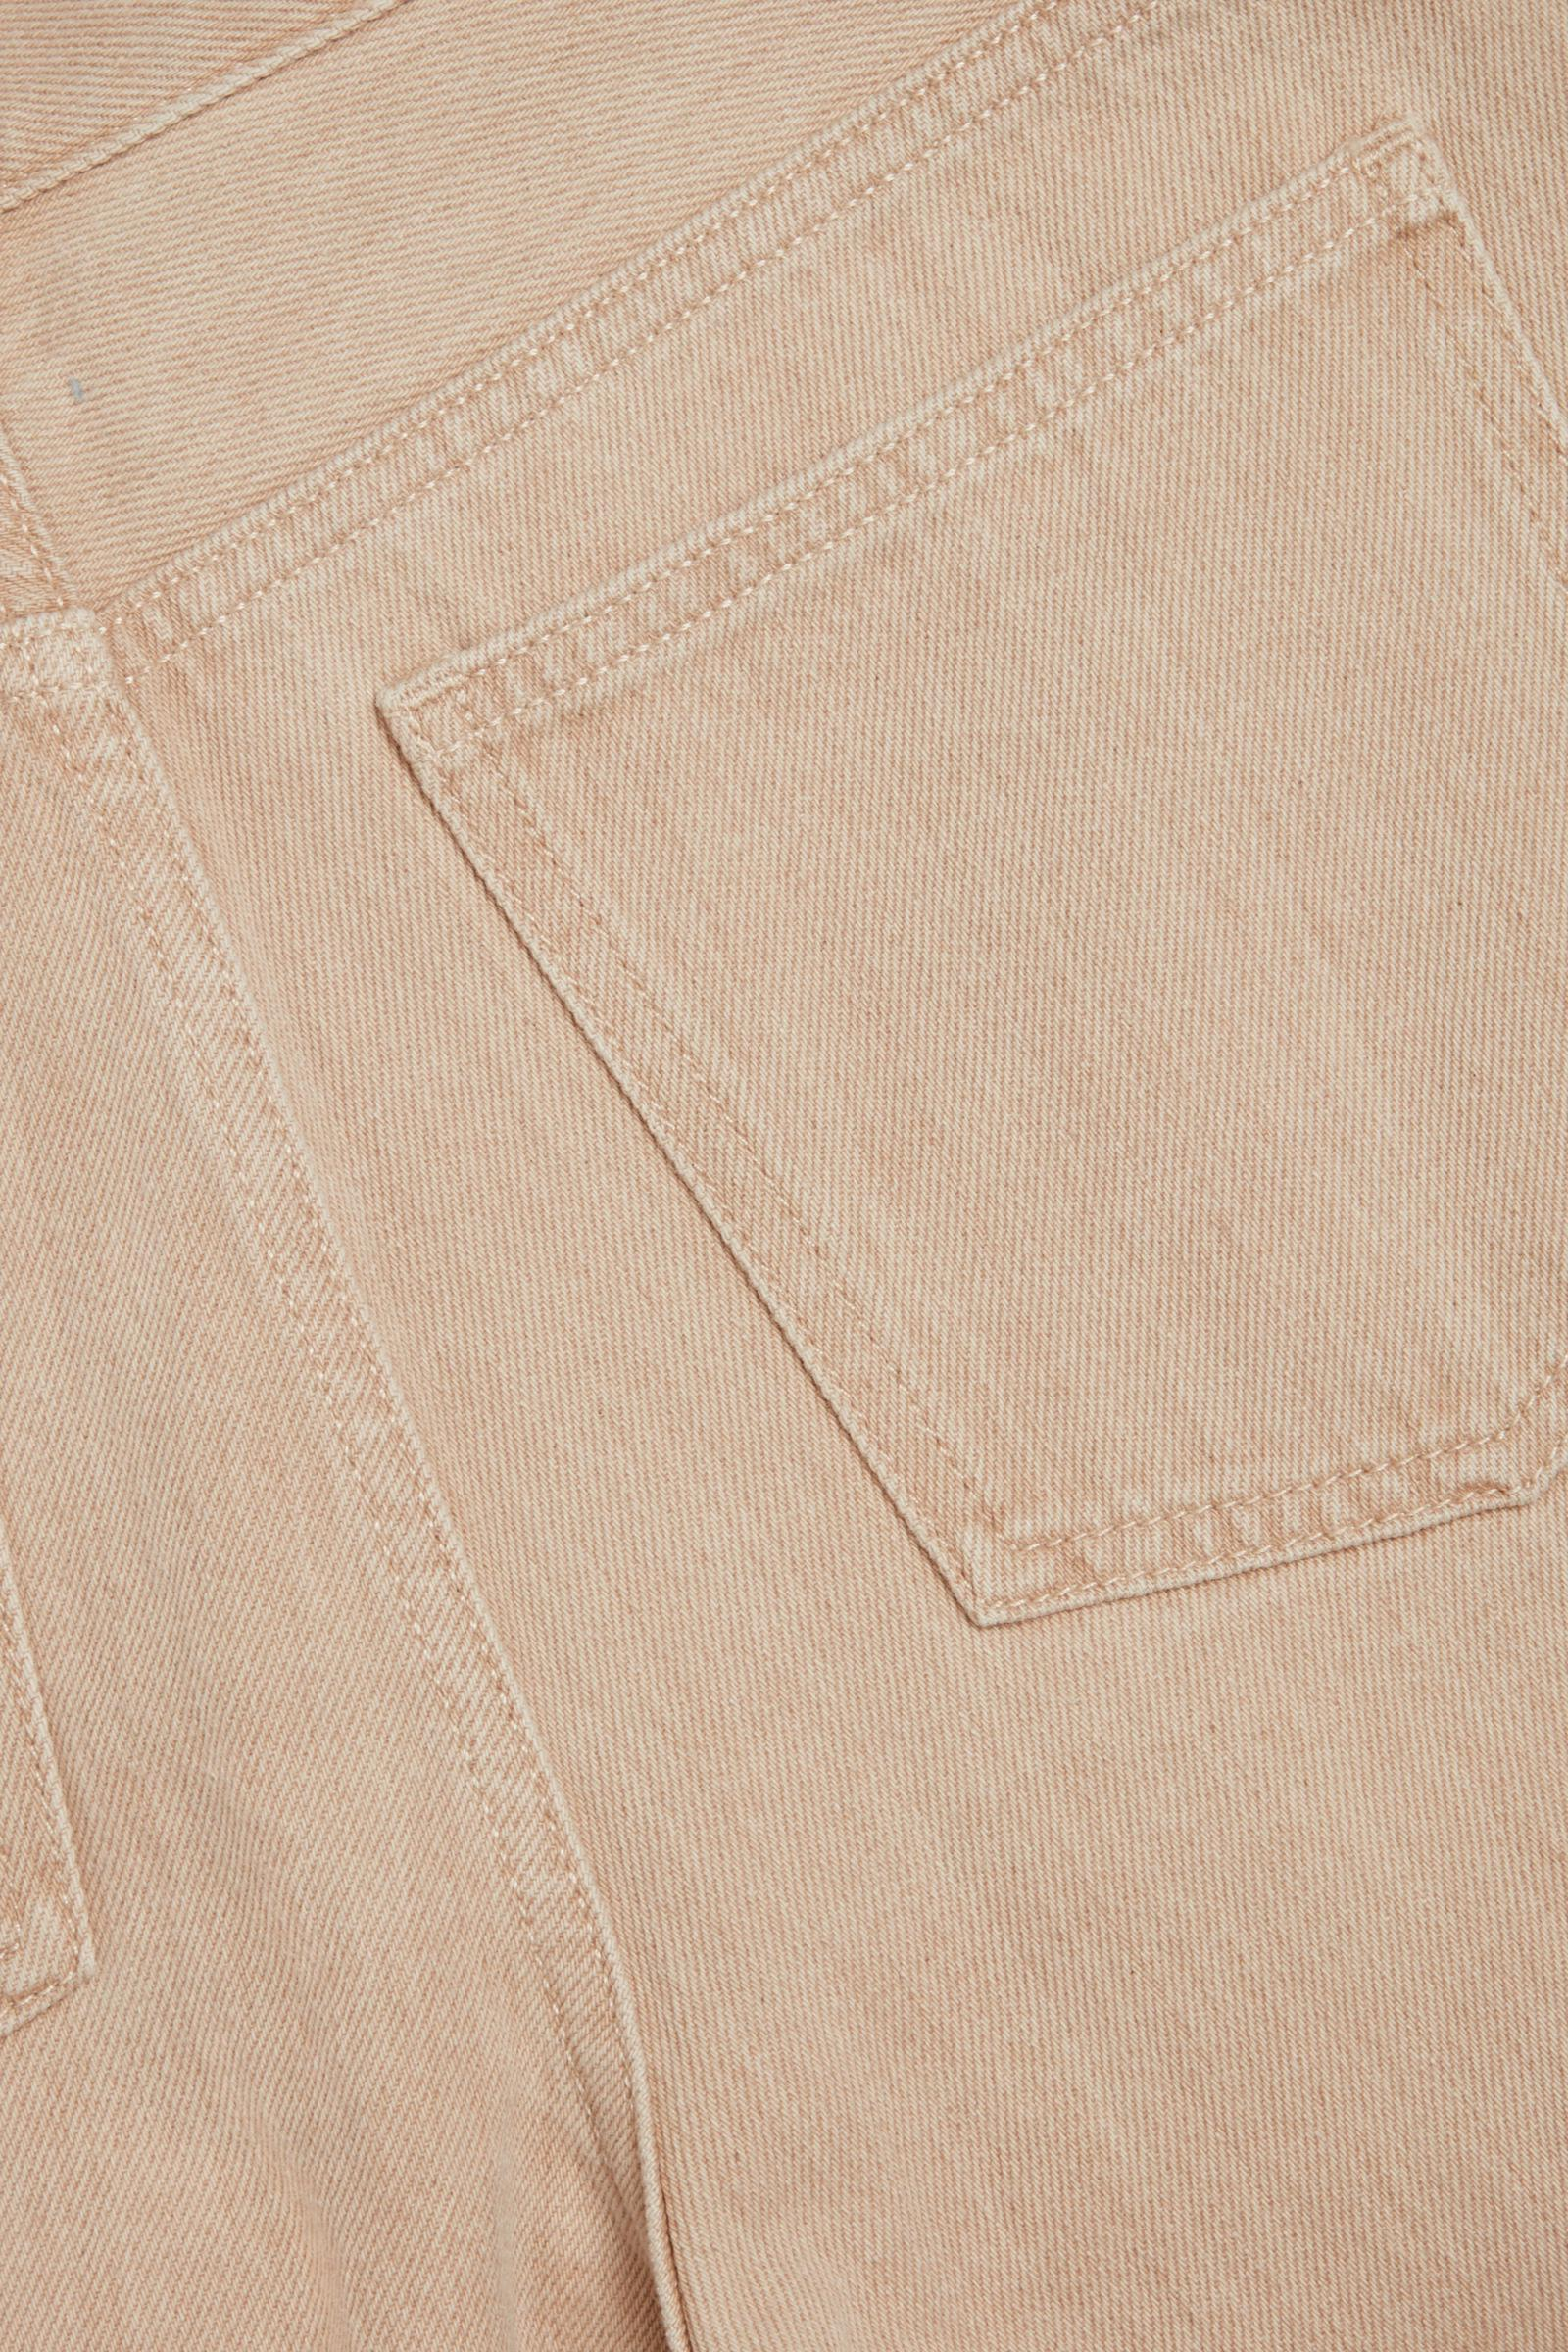 TAPERED HIGH-RISE JEANS 5